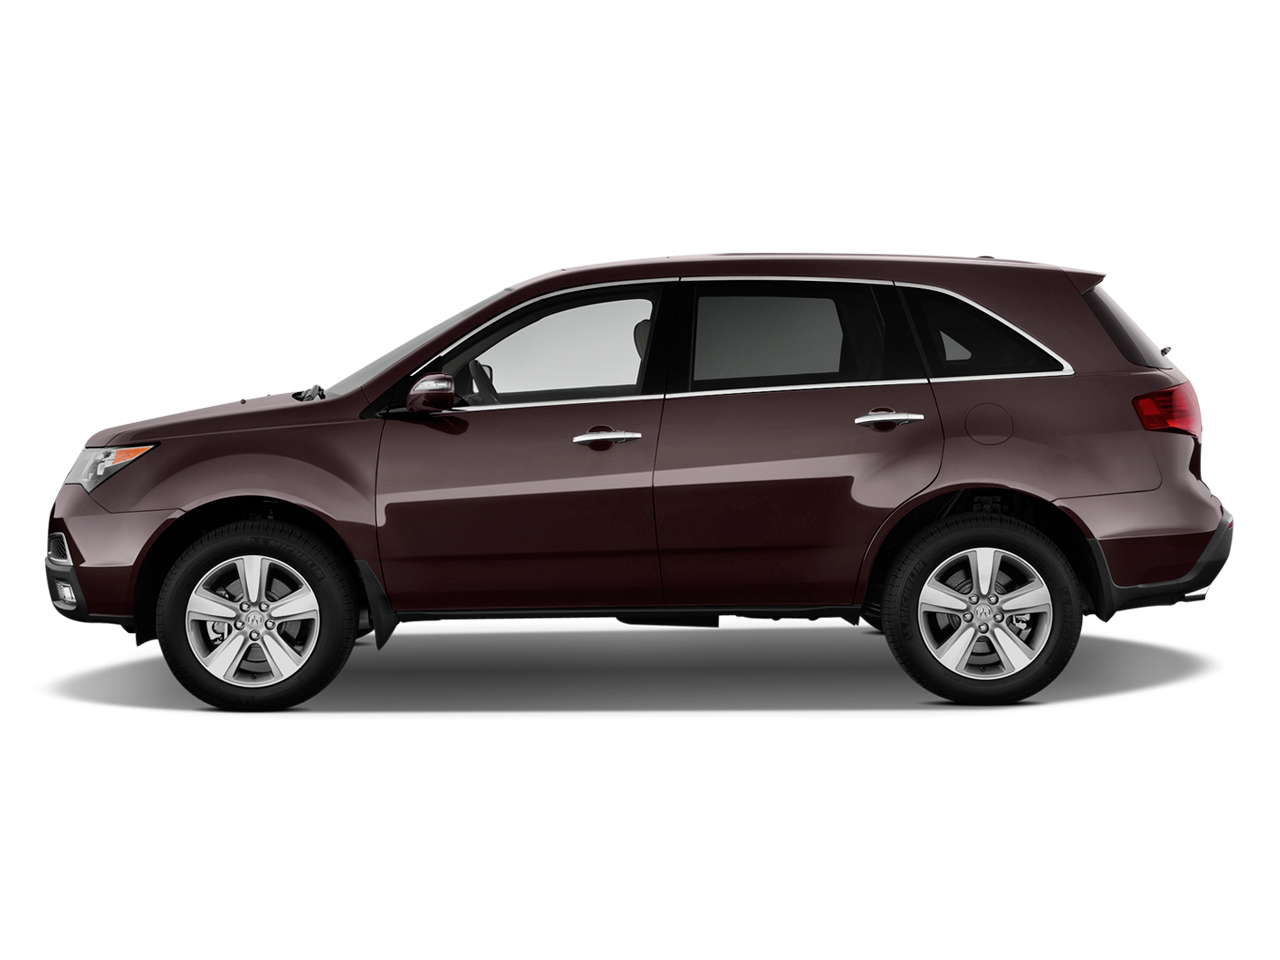 2011 Acura Mdx Review Ratings Specs Prices And Photos The Car Connection